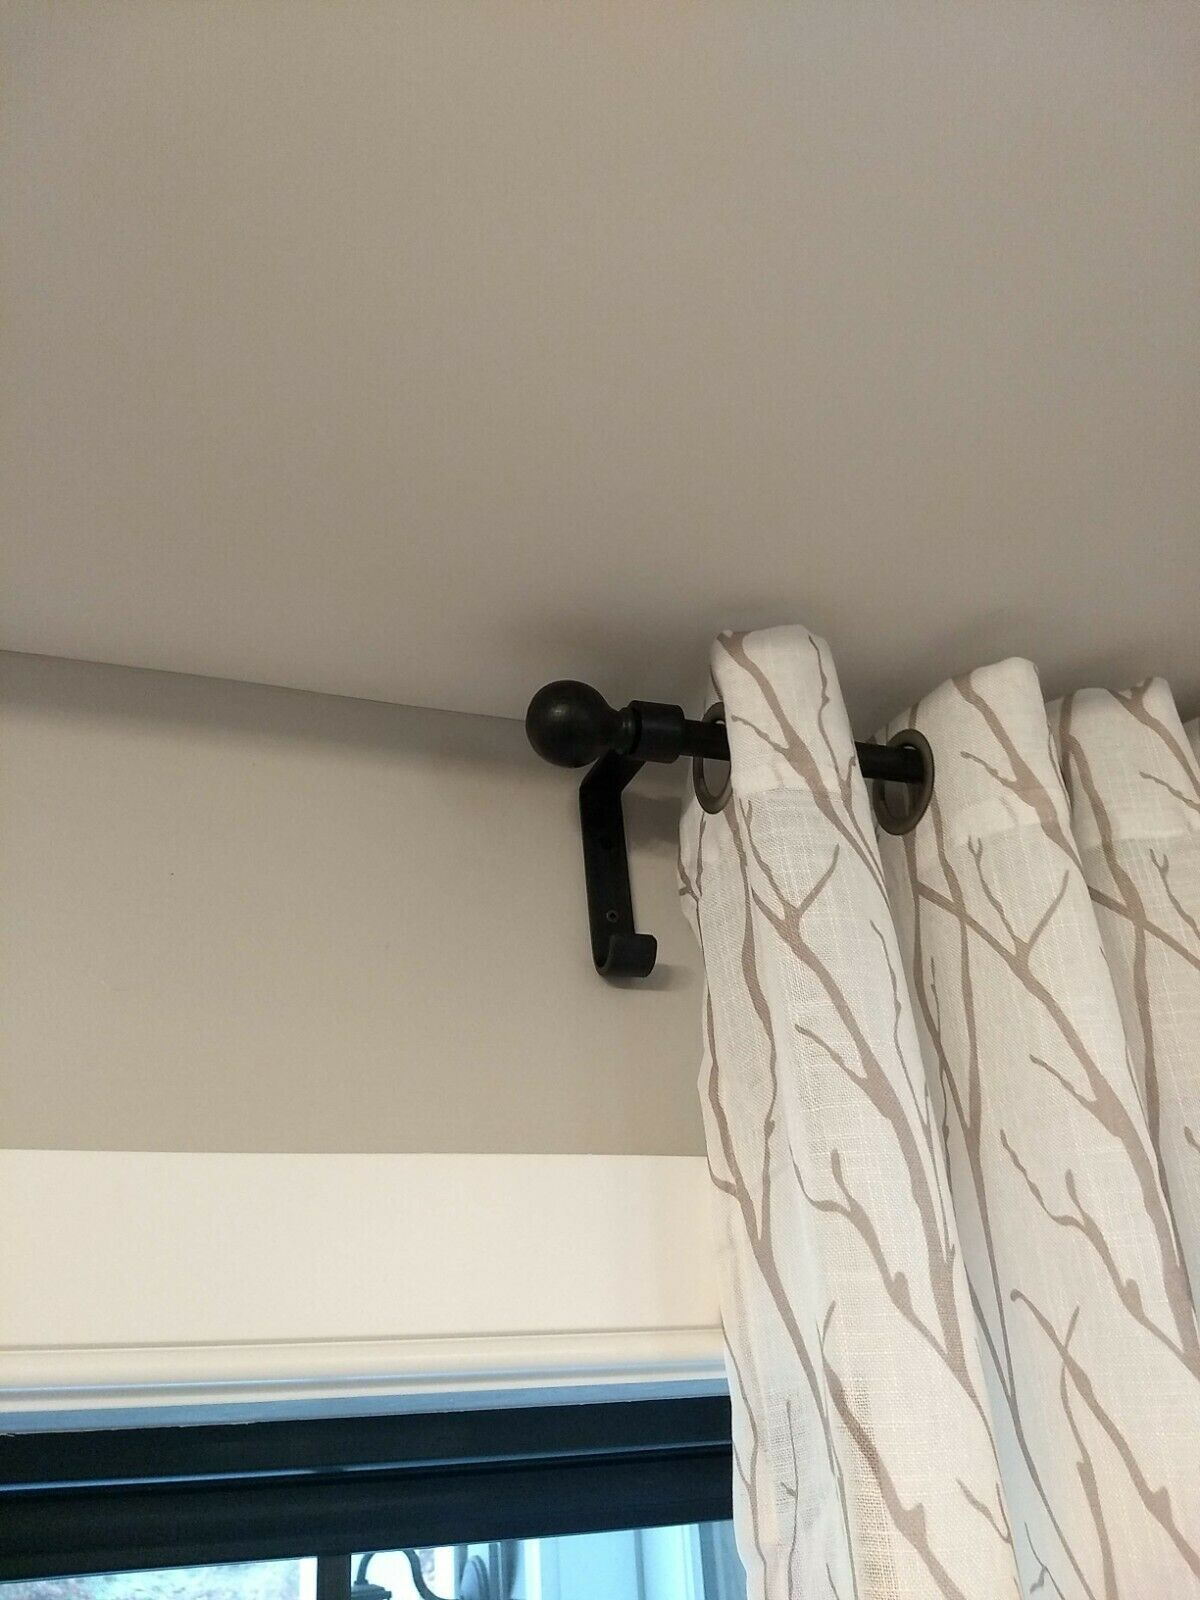 Pottery Barn Black Cast Iron 96 120 Curtain Rod 2 Wood Ball Finials 75 For Sale Online Ebay